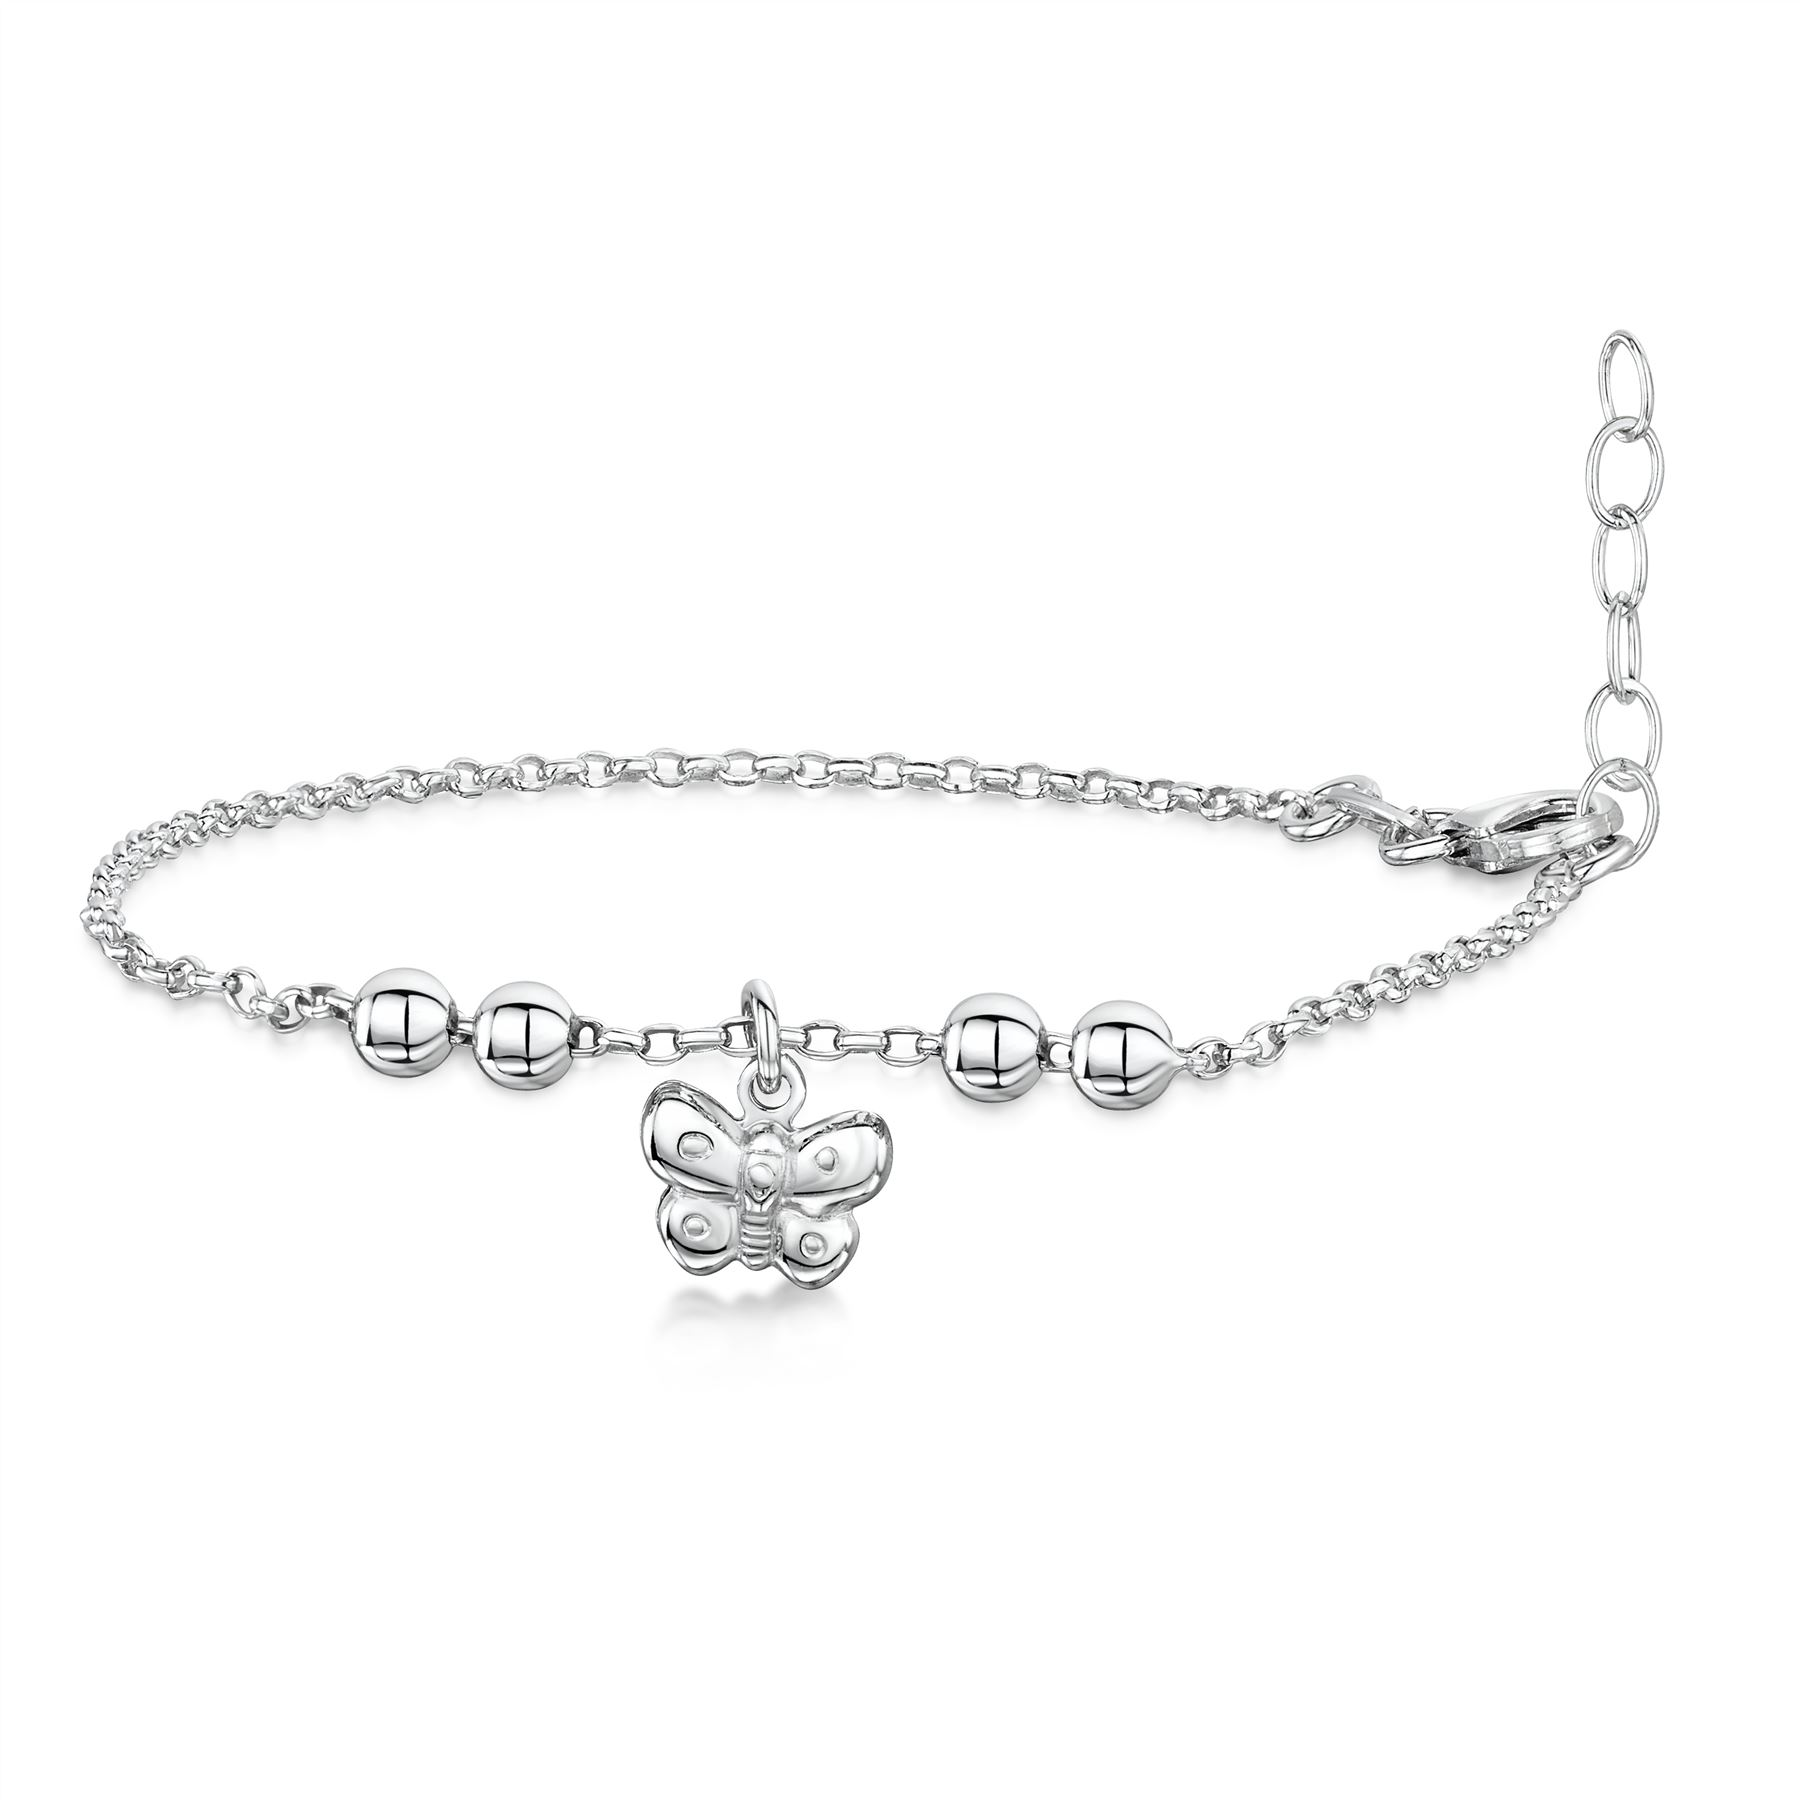 Amberta-Jewelry-925-Sterling-Silver-Adjustable-Anklet-for-Women-Made-in-Italy miniature 27